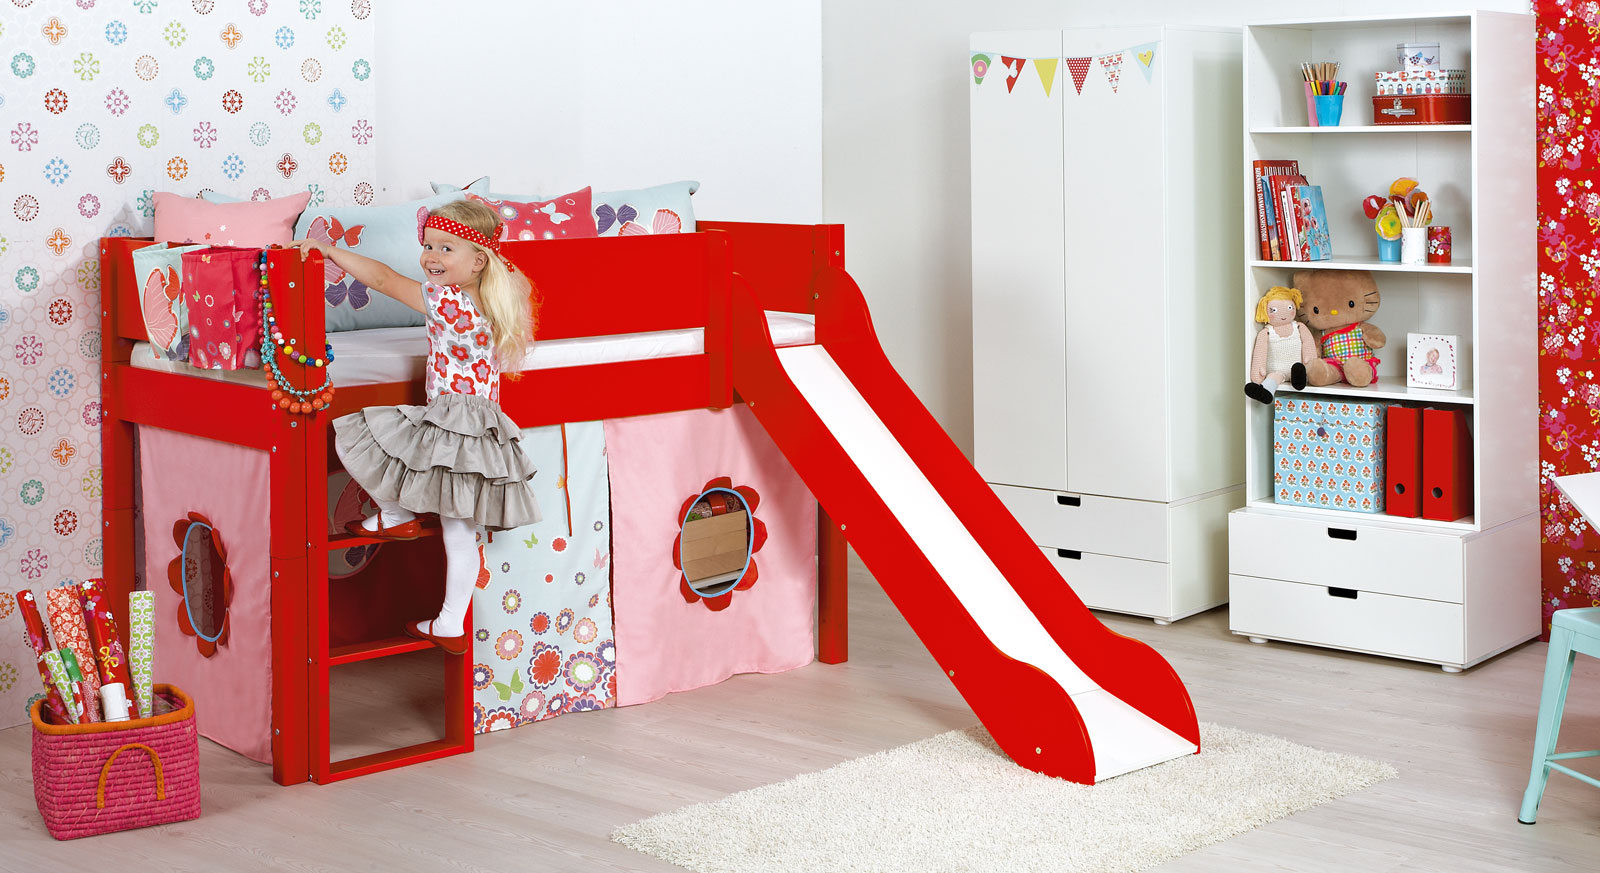 hochbett mit rutsche in z b rot kids town color. Black Bedroom Furniture Sets. Home Design Ideas